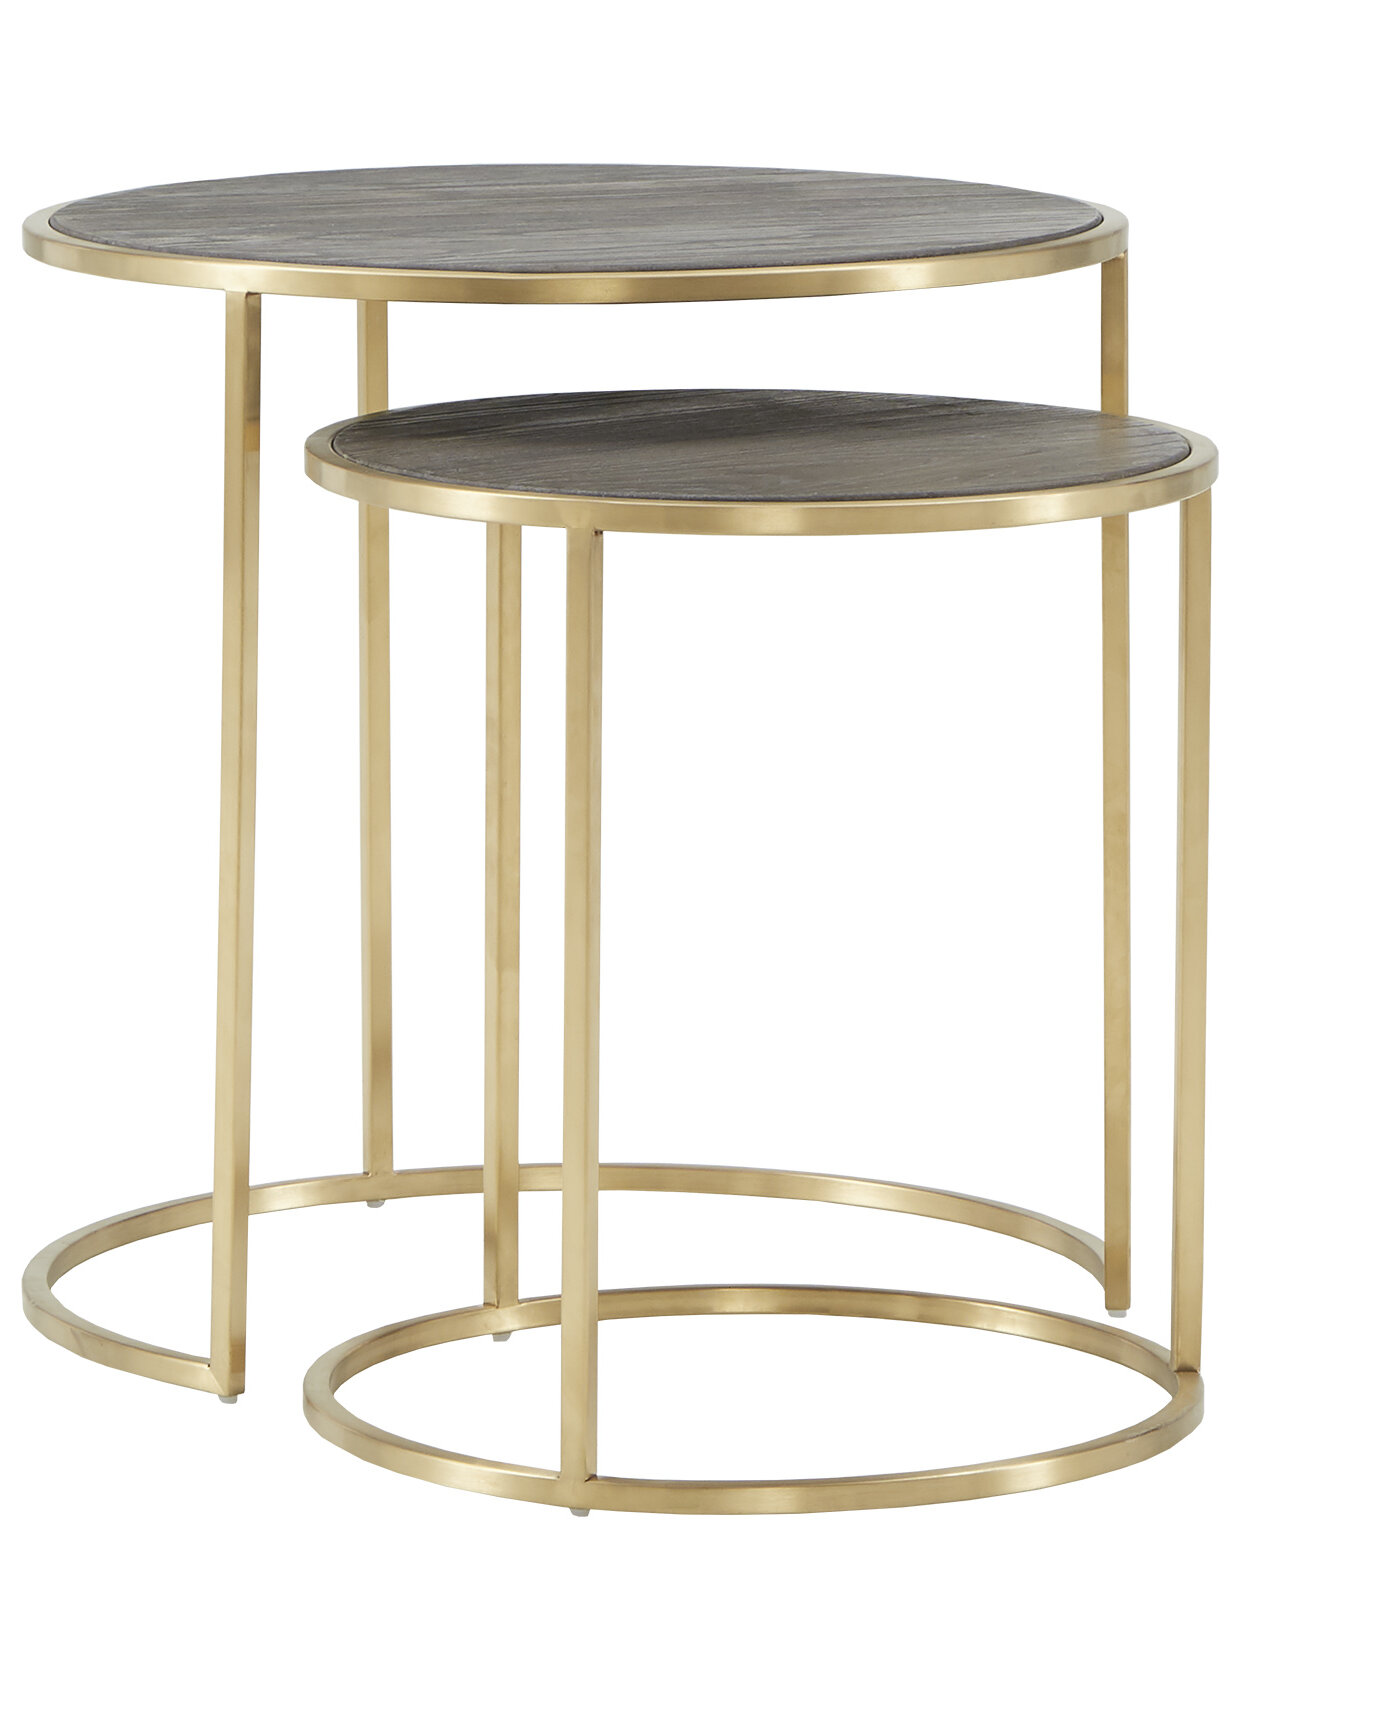 Glam Nesting Side Table 2pc Set Gold Round Glass Metal Steel Goldtone Finish Metallic Includes Hardware